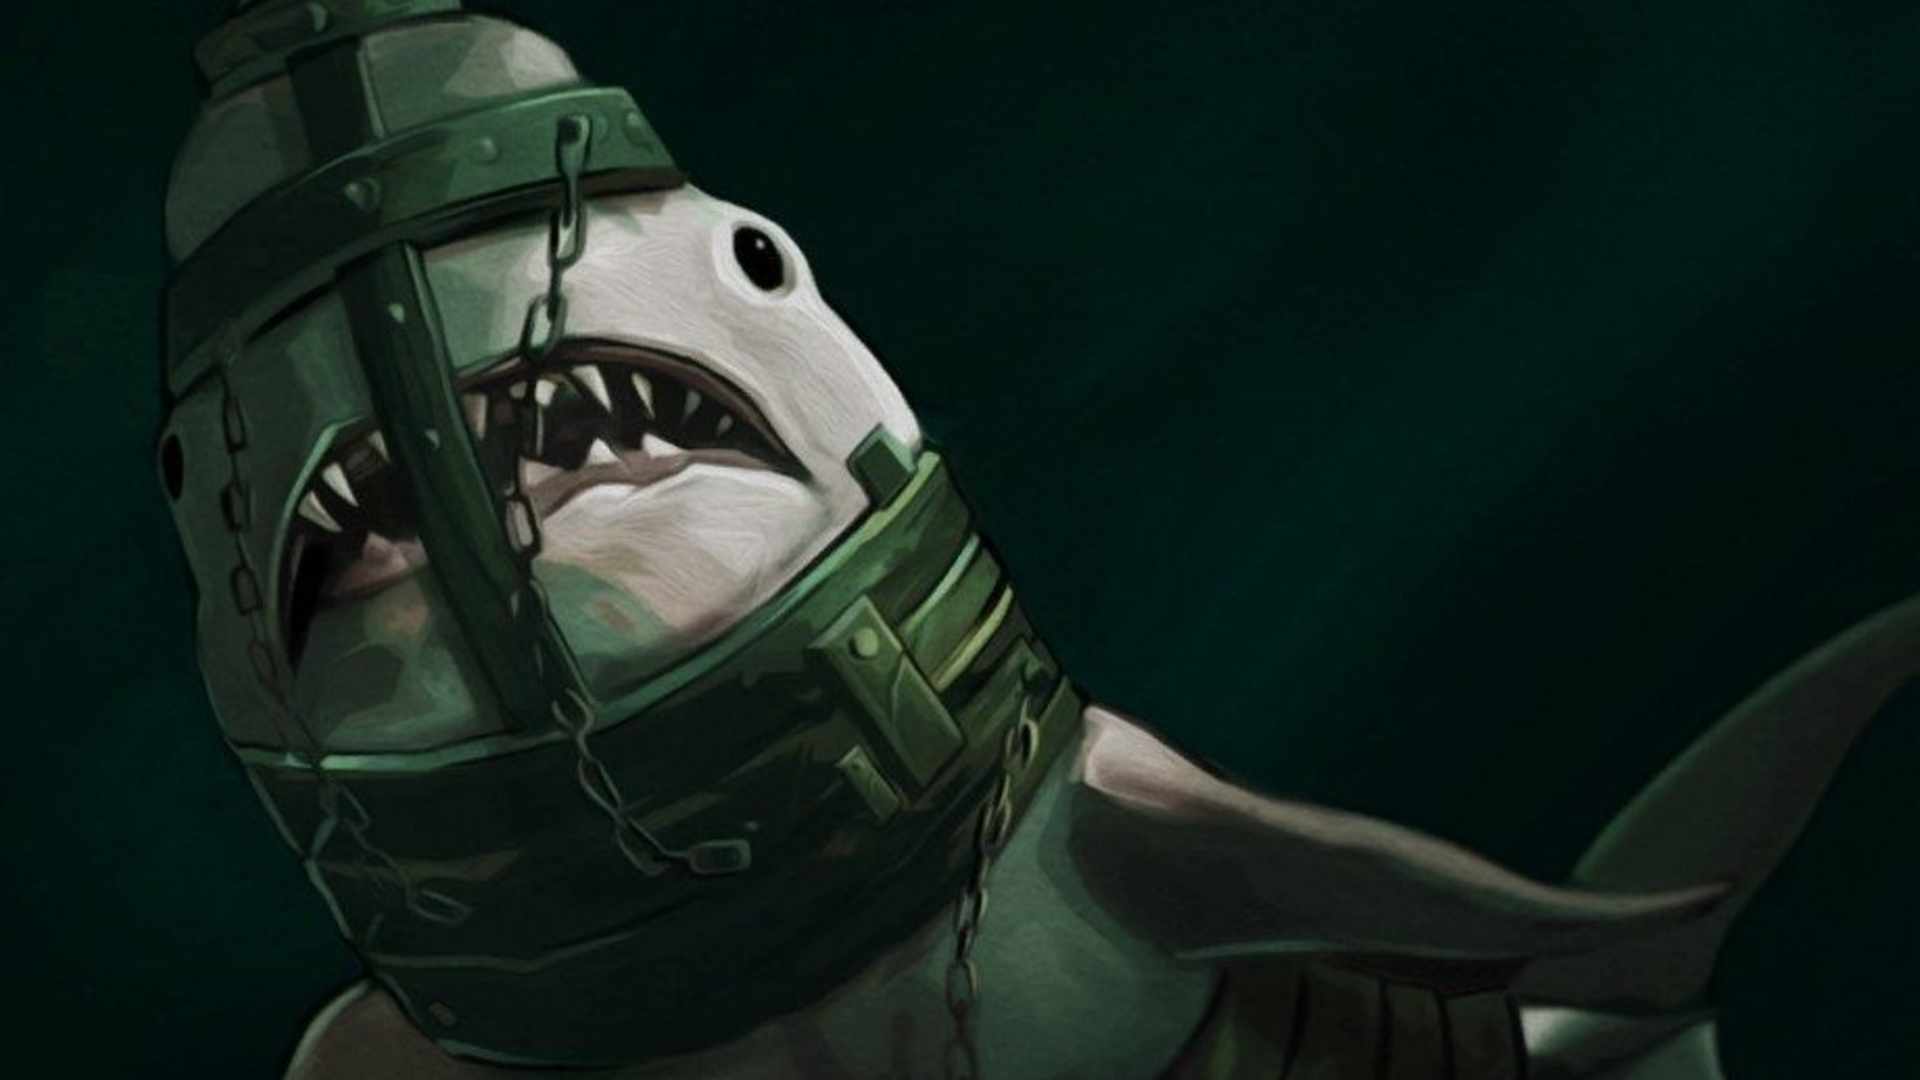 It's early days, but Sunless Sea is already fascinating